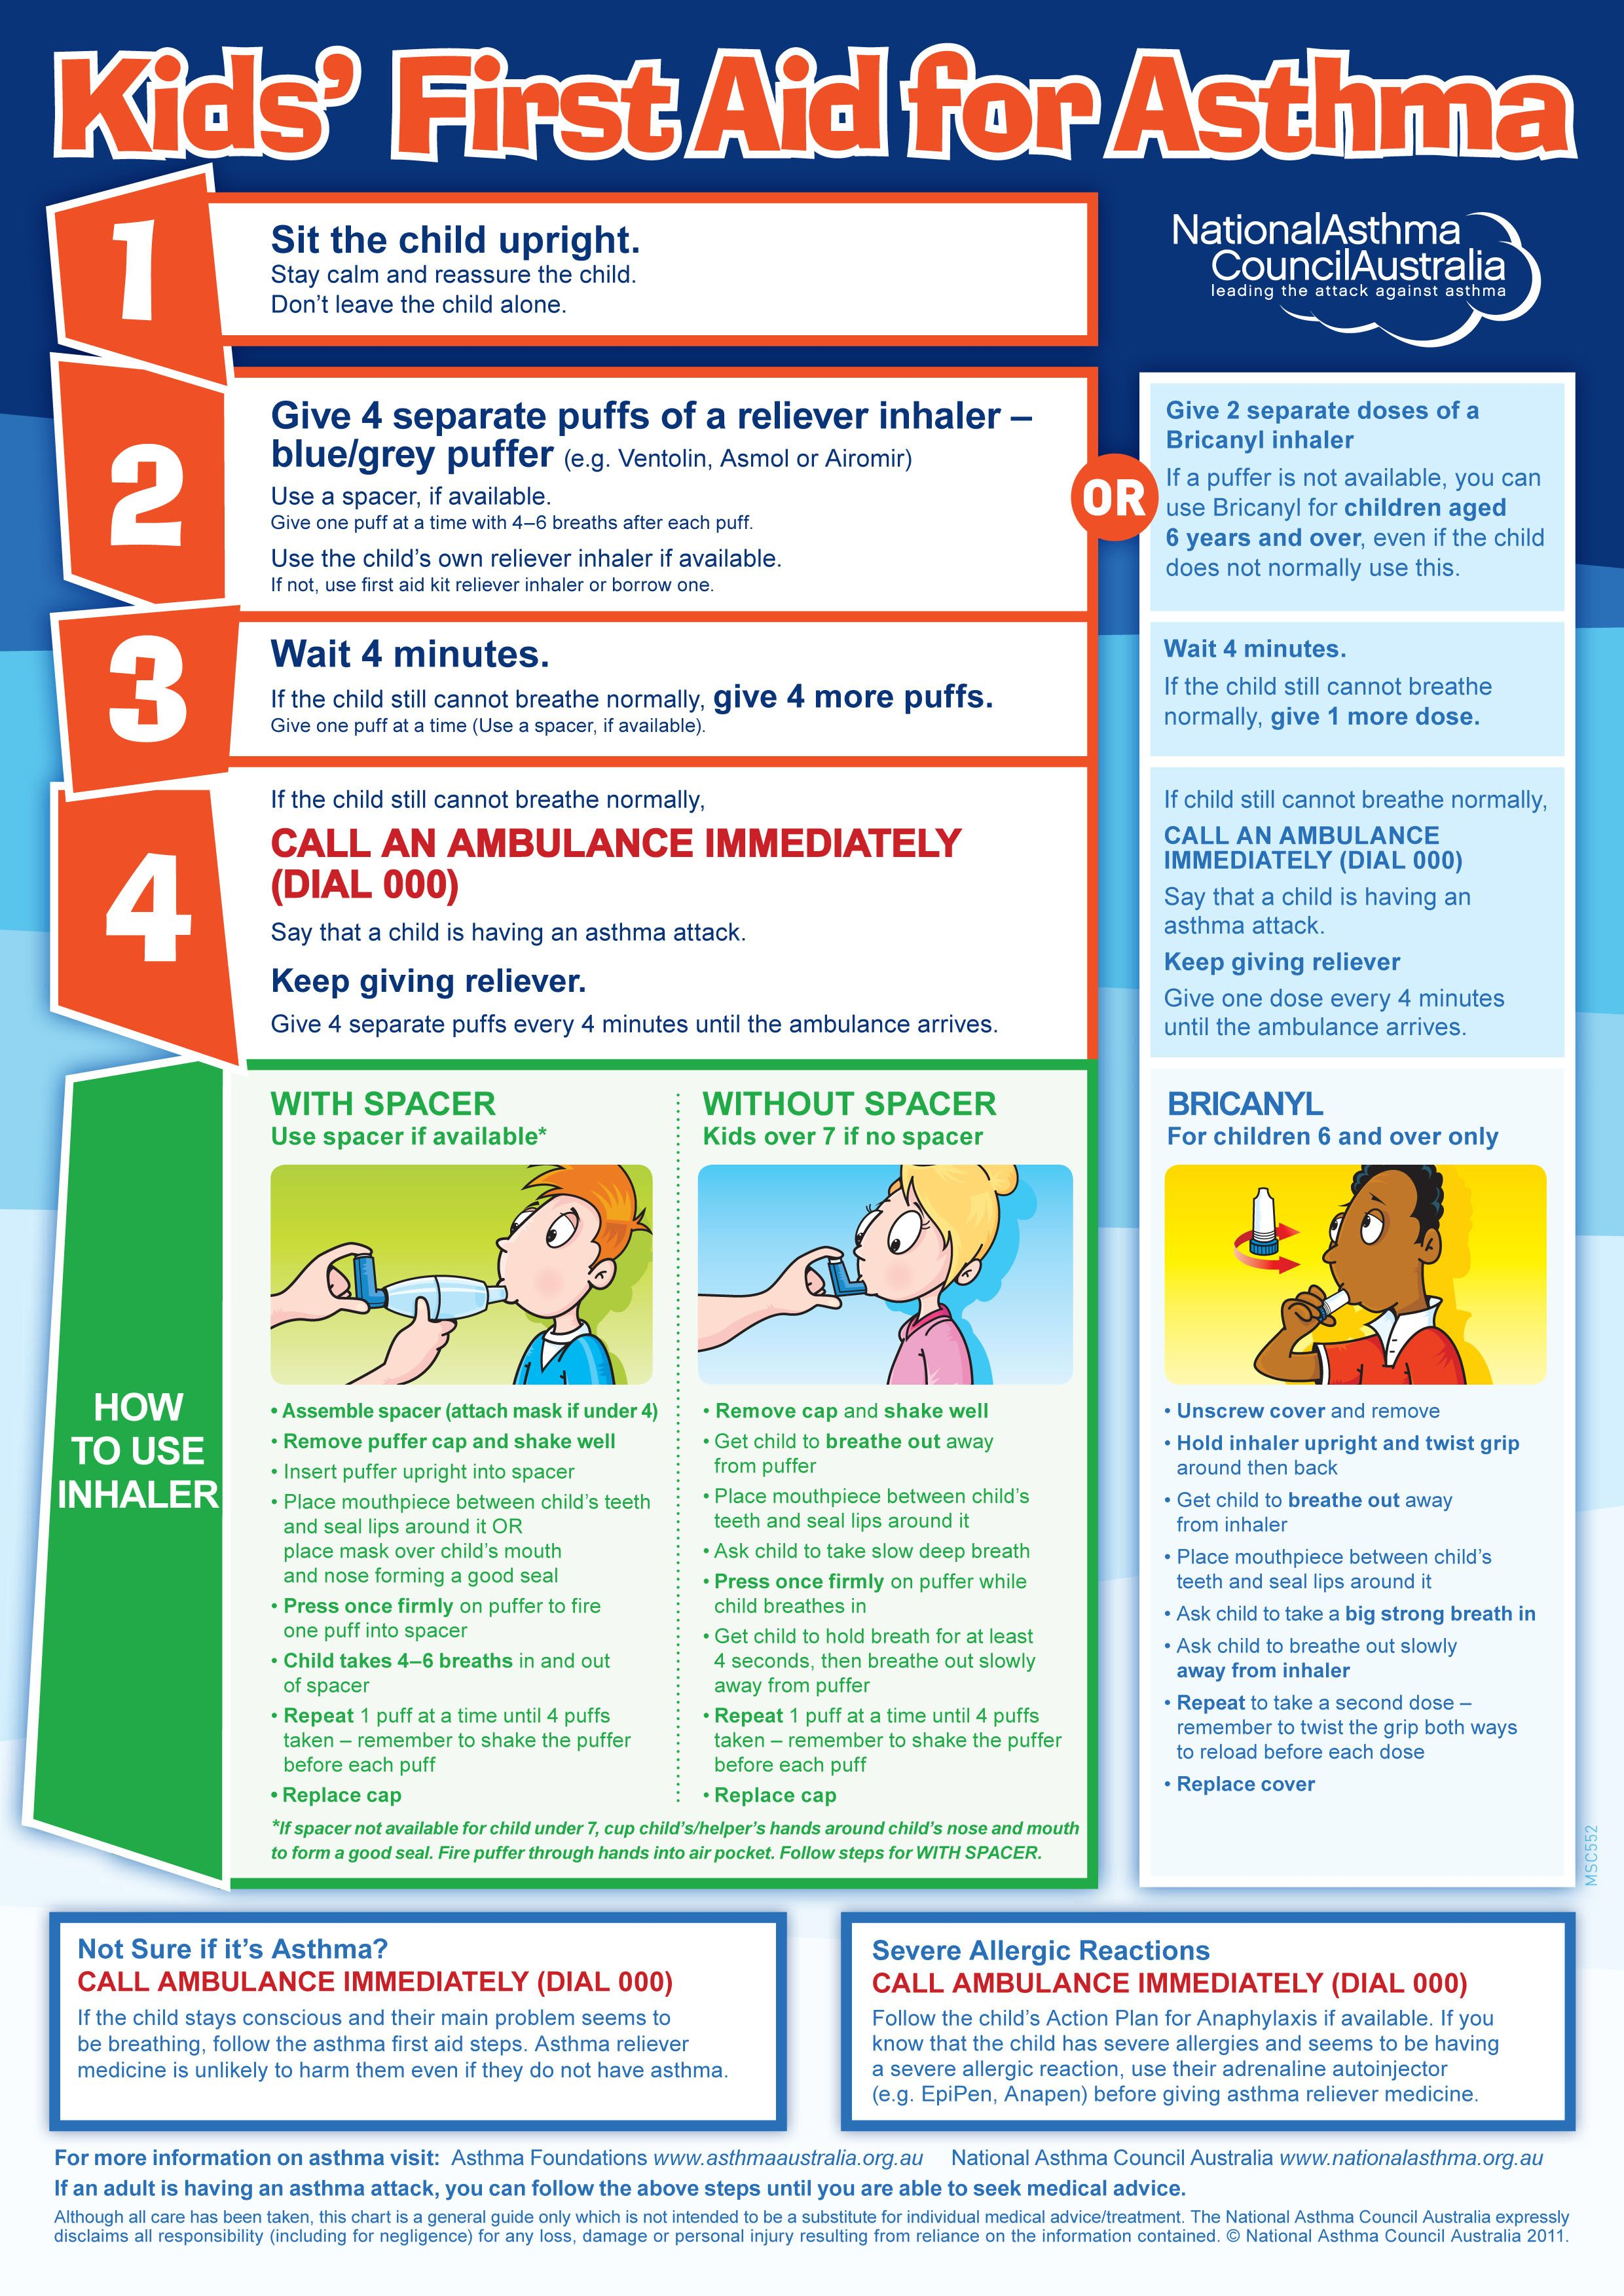 Kids First Aid For An Asthma